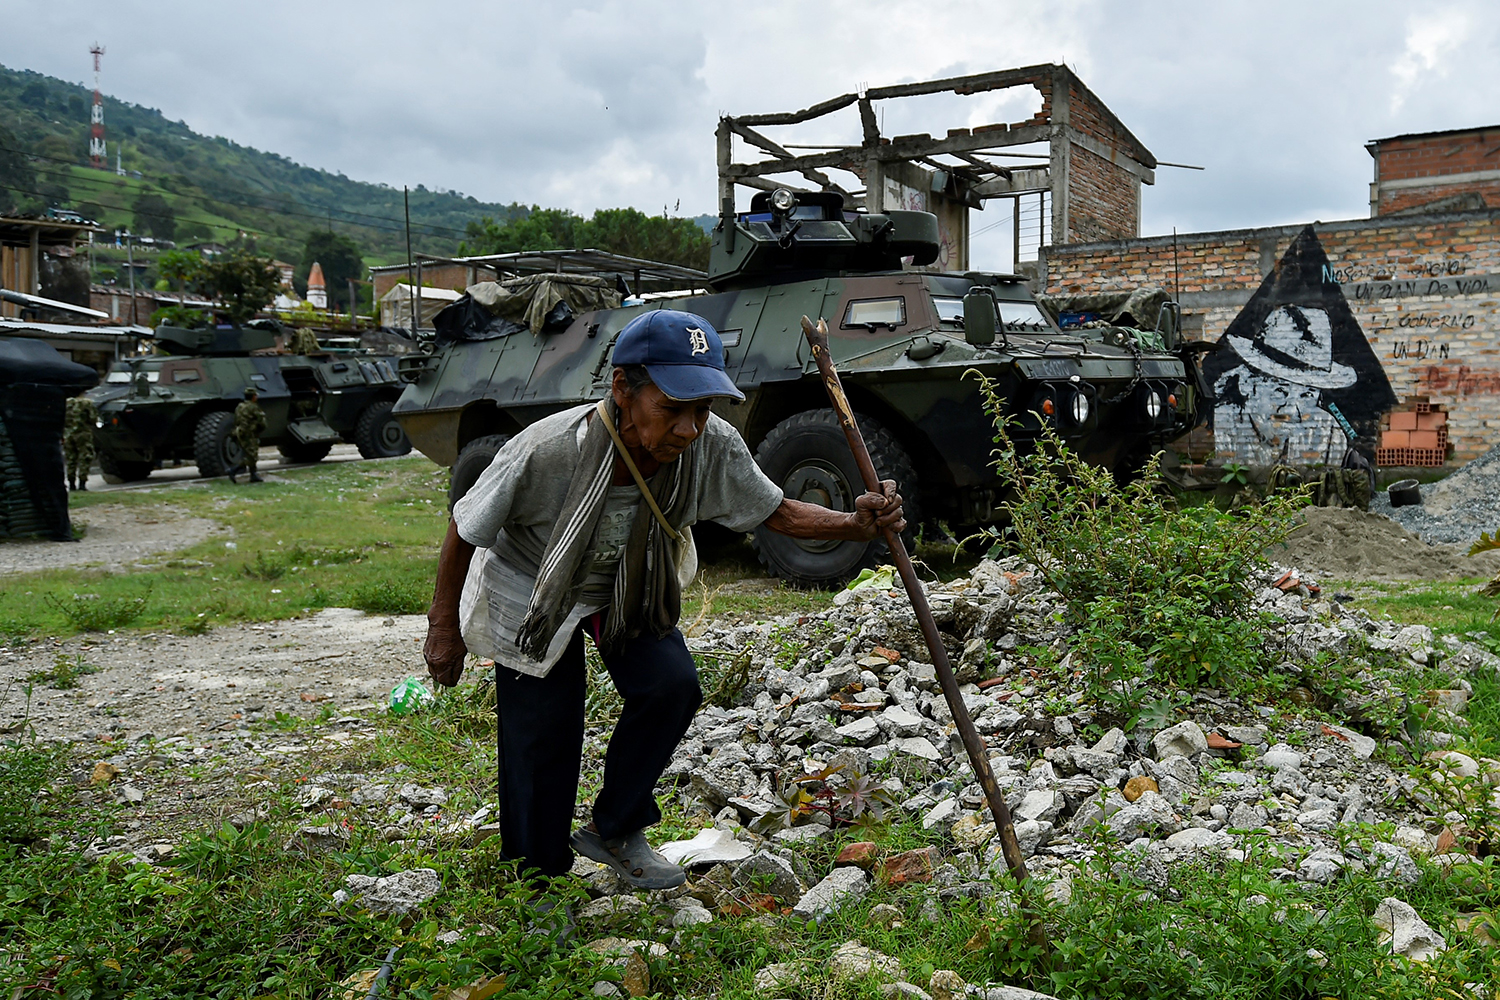 An indigenous woman walks next to a Colombian Army armored vehicle in Toribio, Colombia, on Oct. 30. Five indigenous guards were killed and six more injured during an attack authorities blamed on a dissident insurgent group that refused to join the country's peace accord. LUIS ROBAYO/AFP via Getty Images